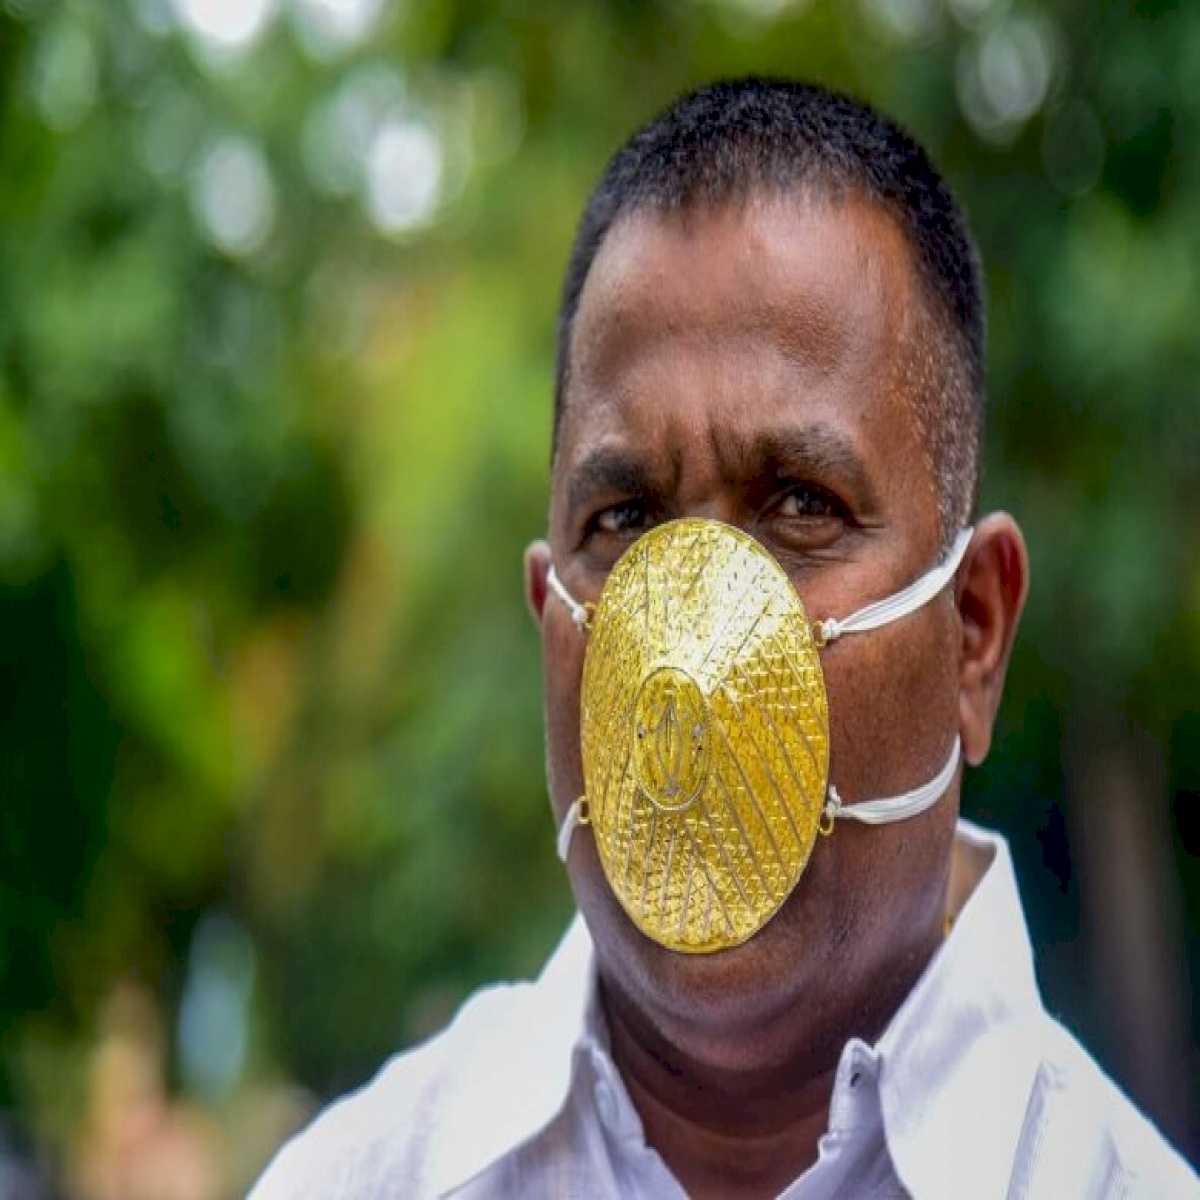 Weird Covid-19 style: Indian man wears gold face mask to shield from  coronavirus | Vietnam Times